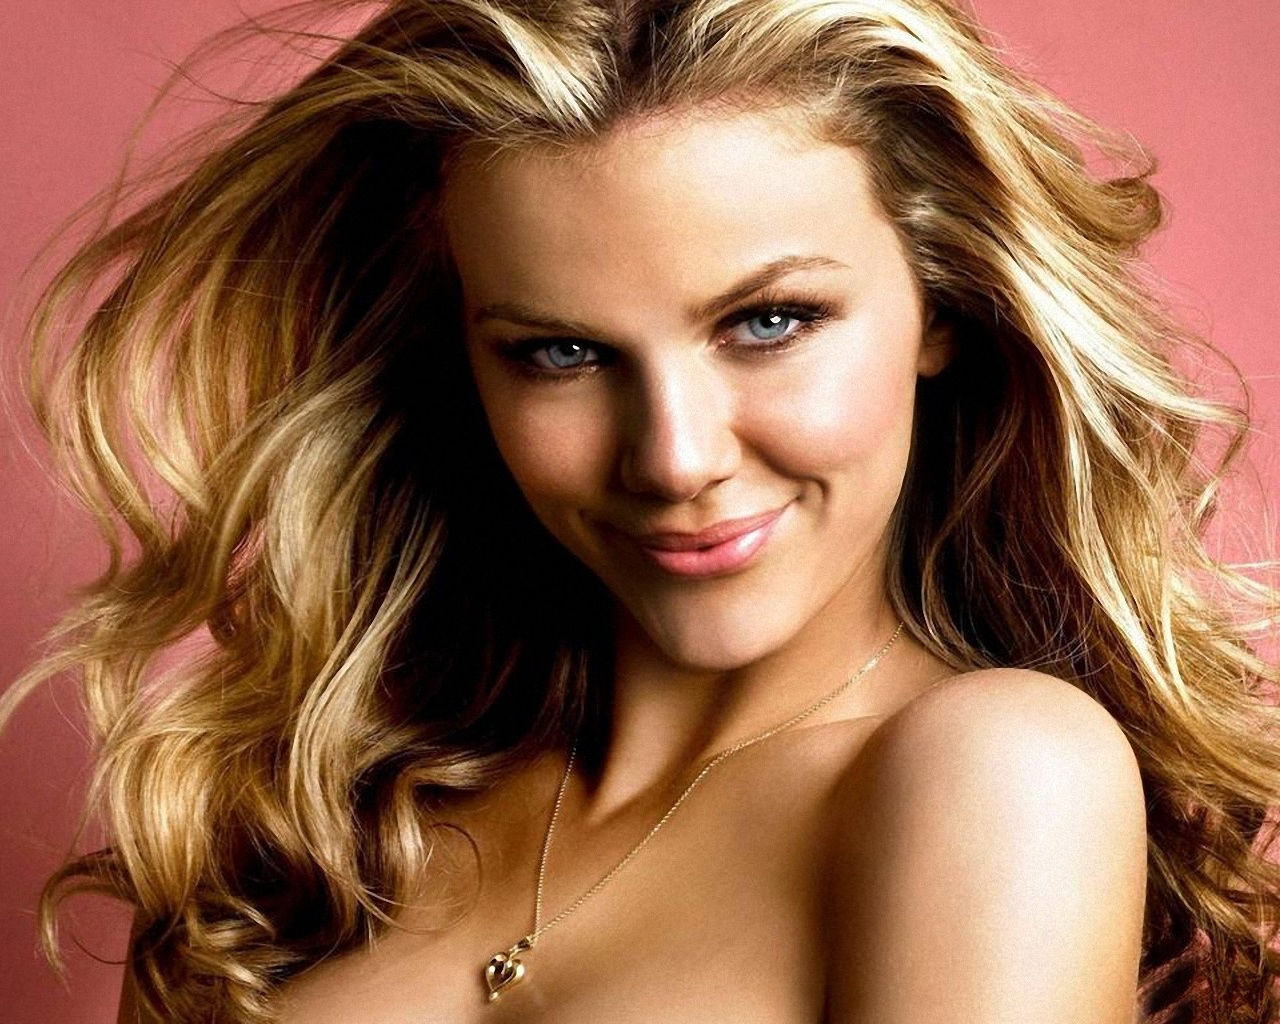 Brooklyn Decker Wallpapers hd 2013